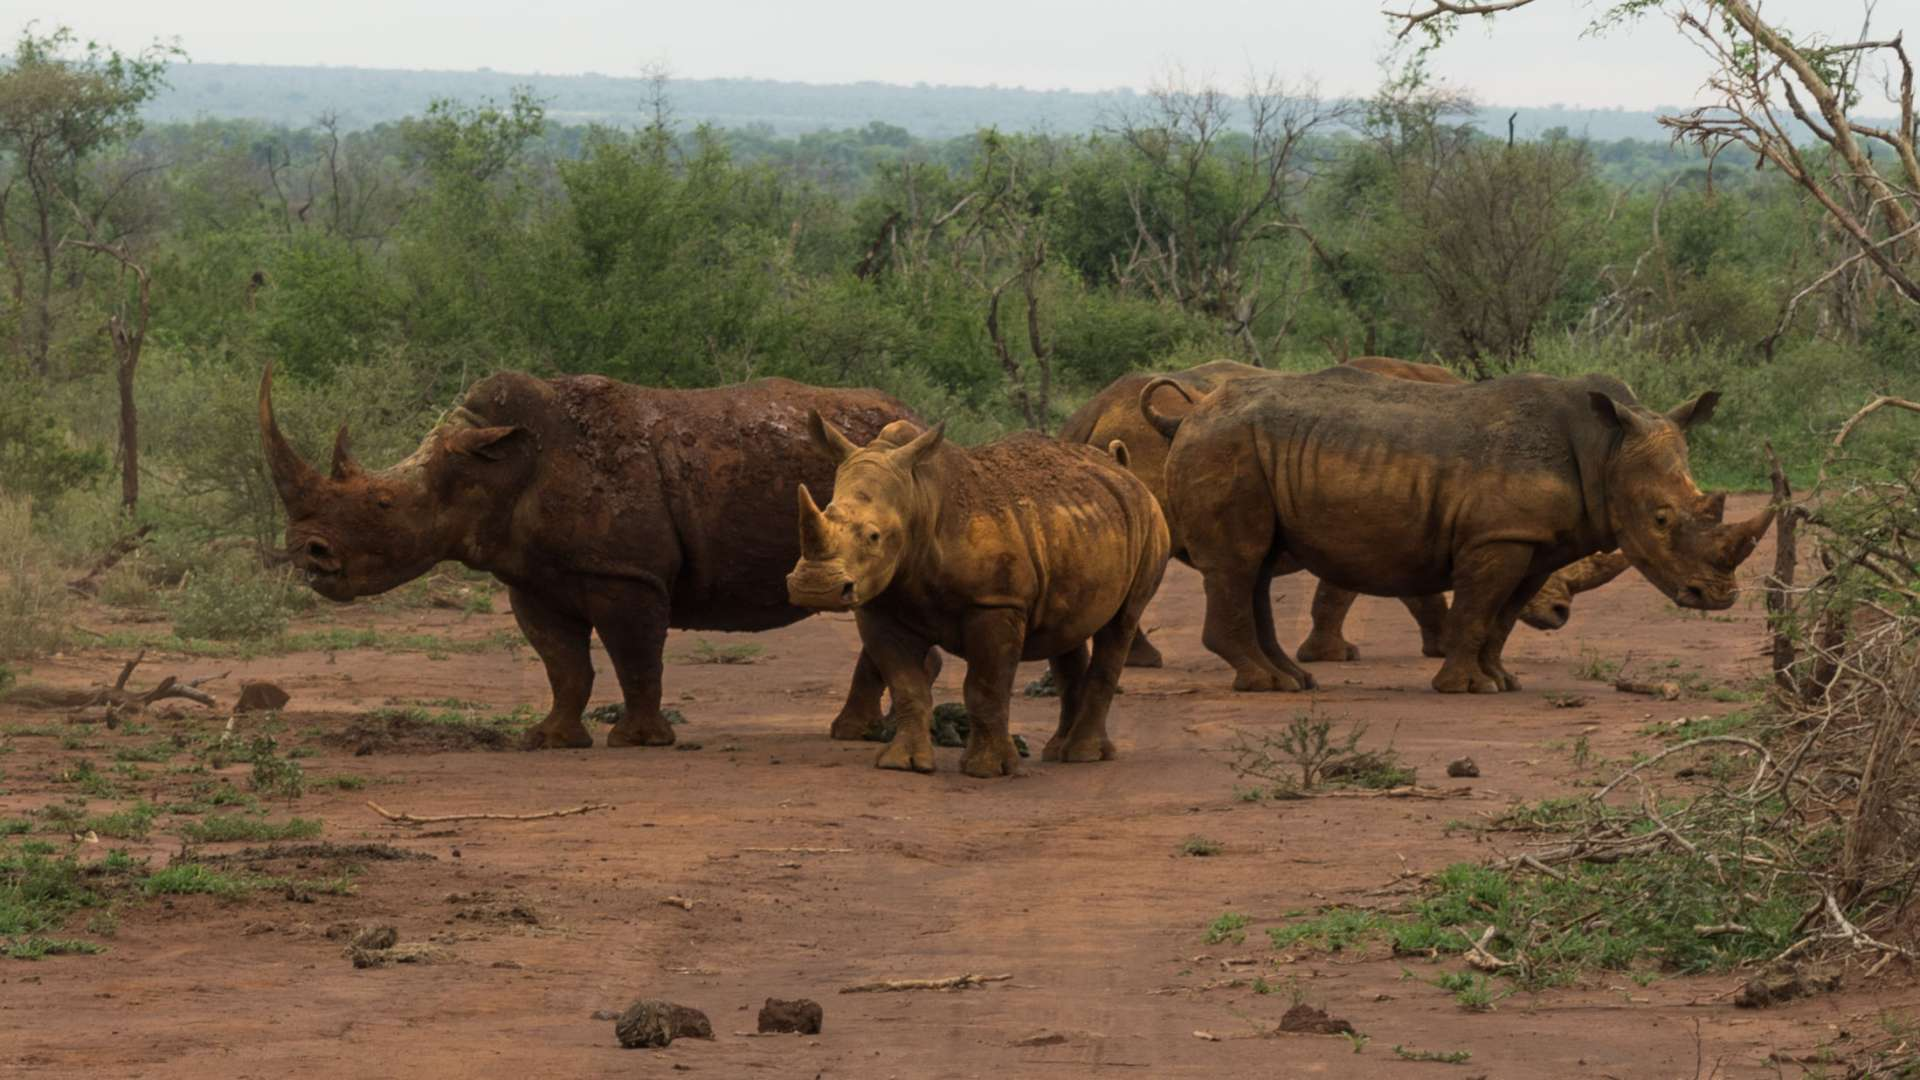 south africa madikwe safari pescart rhino family